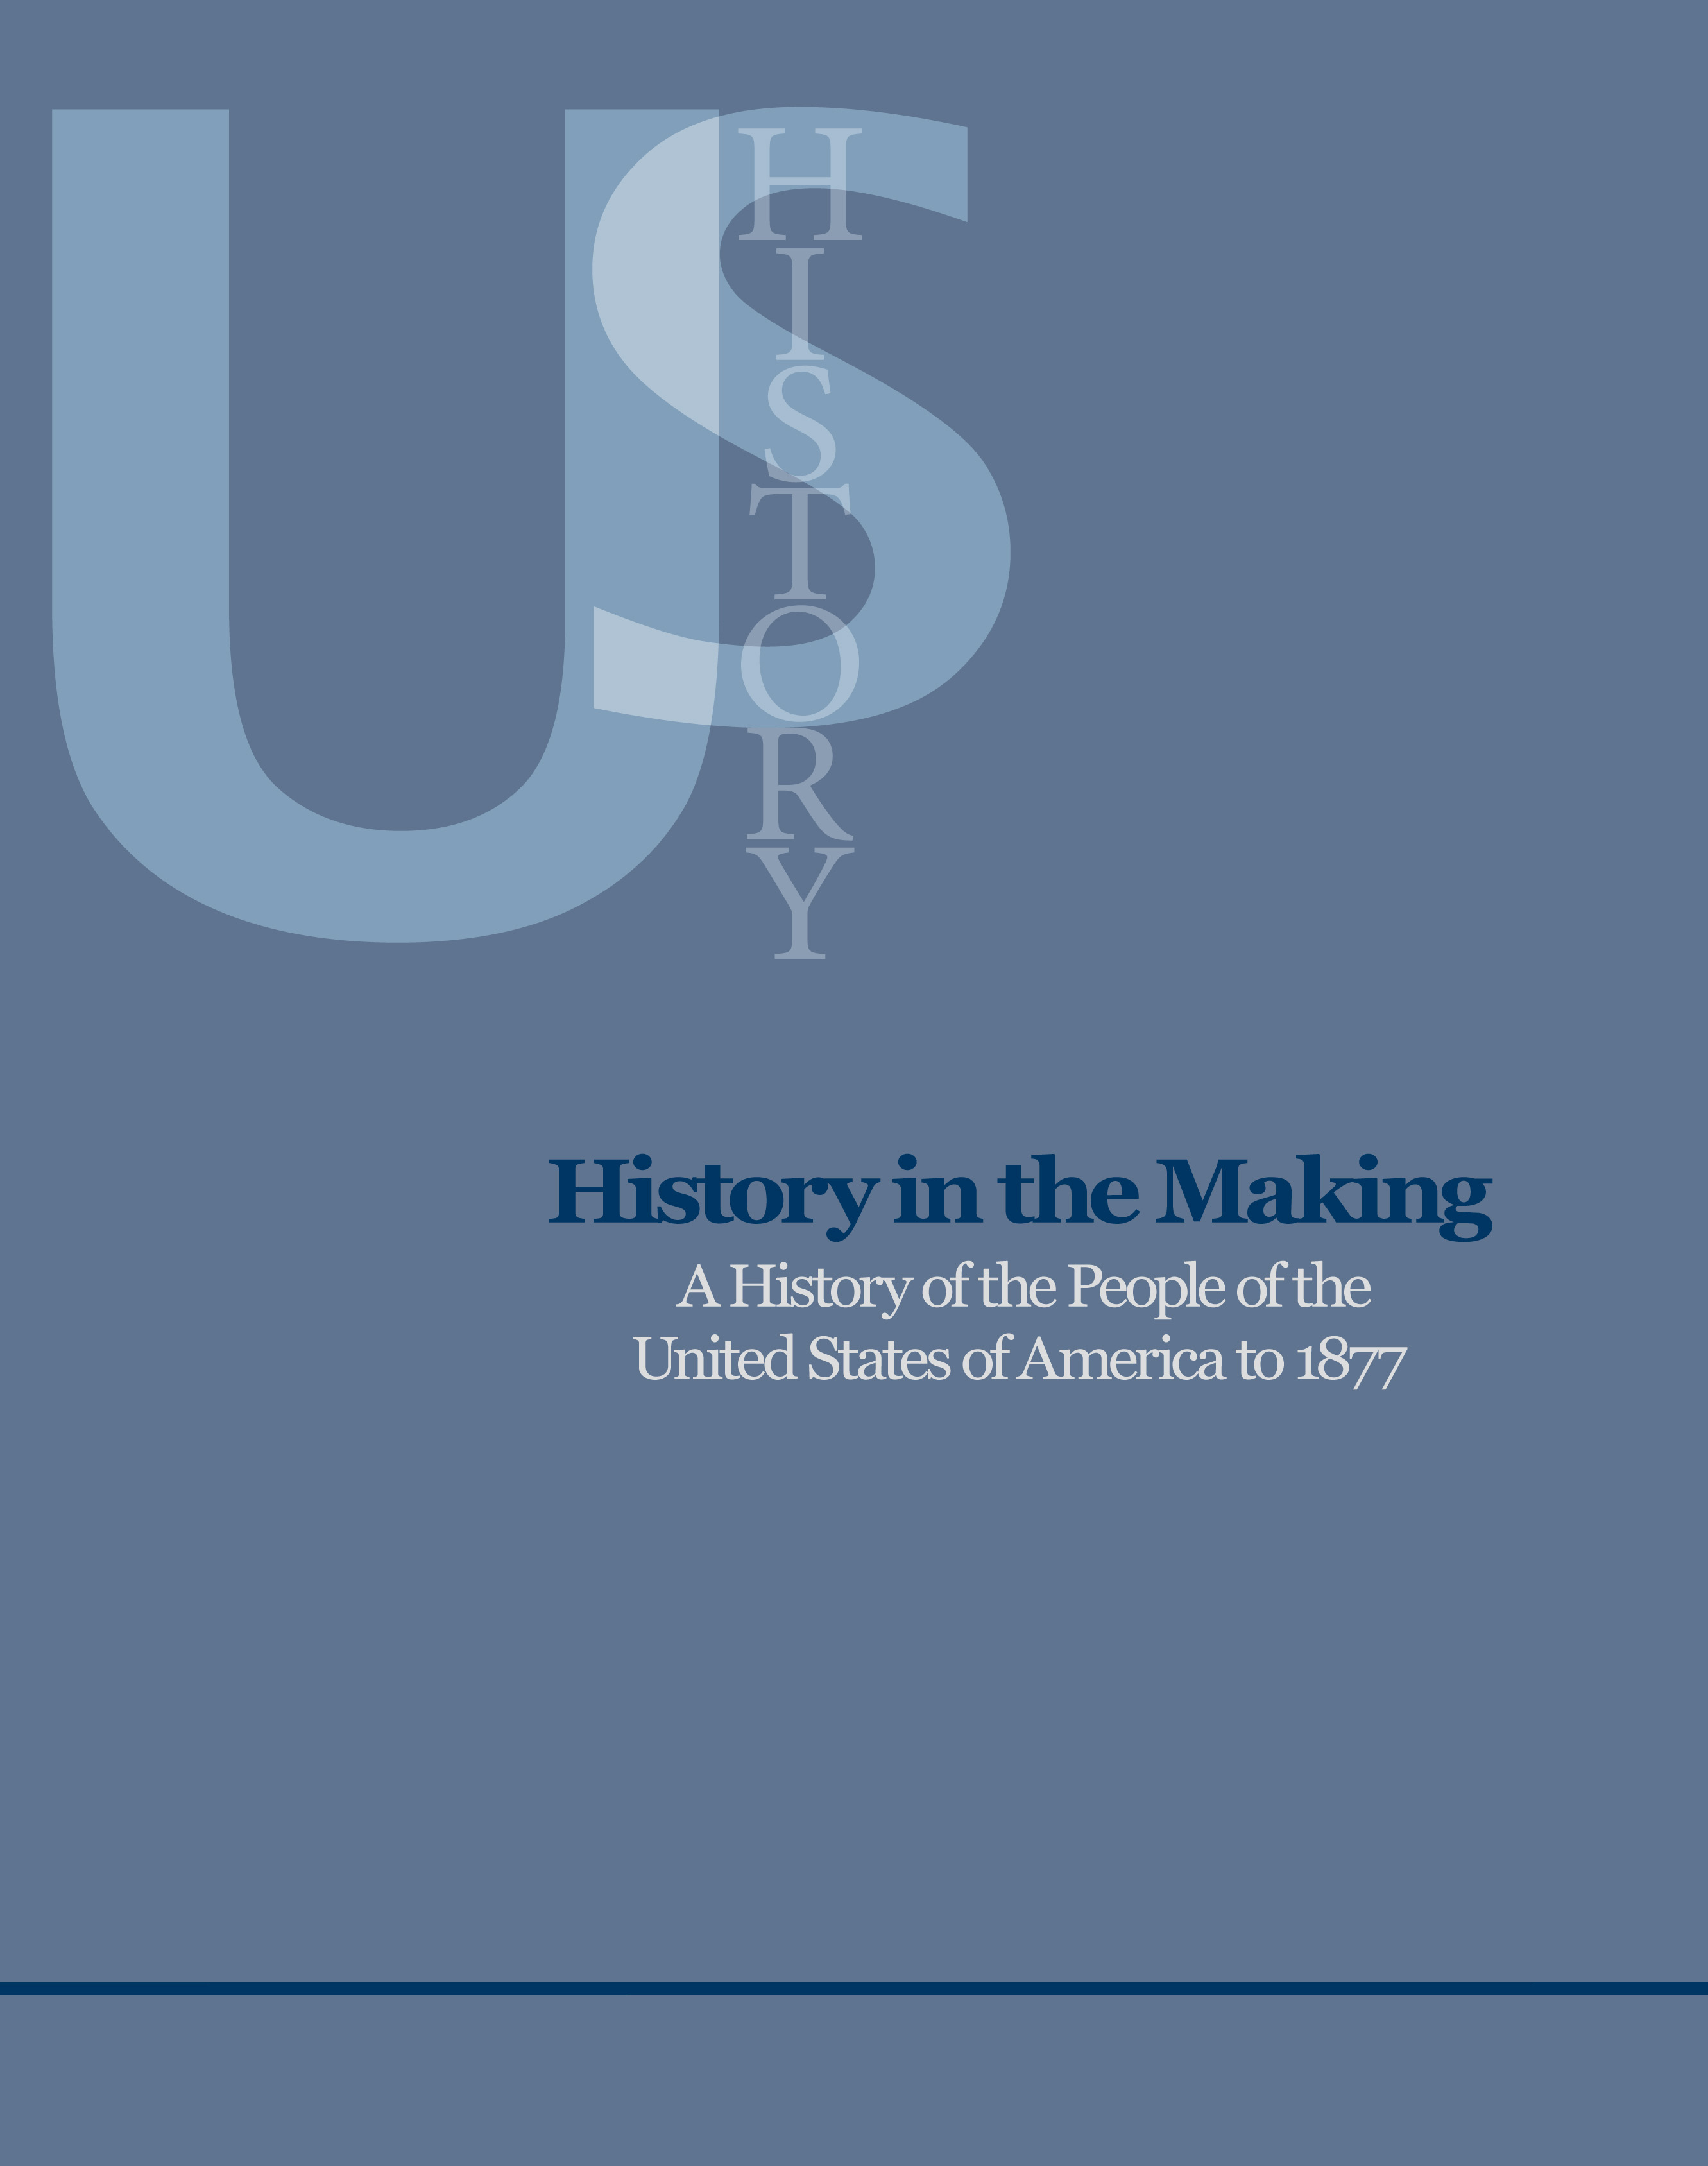 History in the Making: A History of the People of the United States of America to 1877